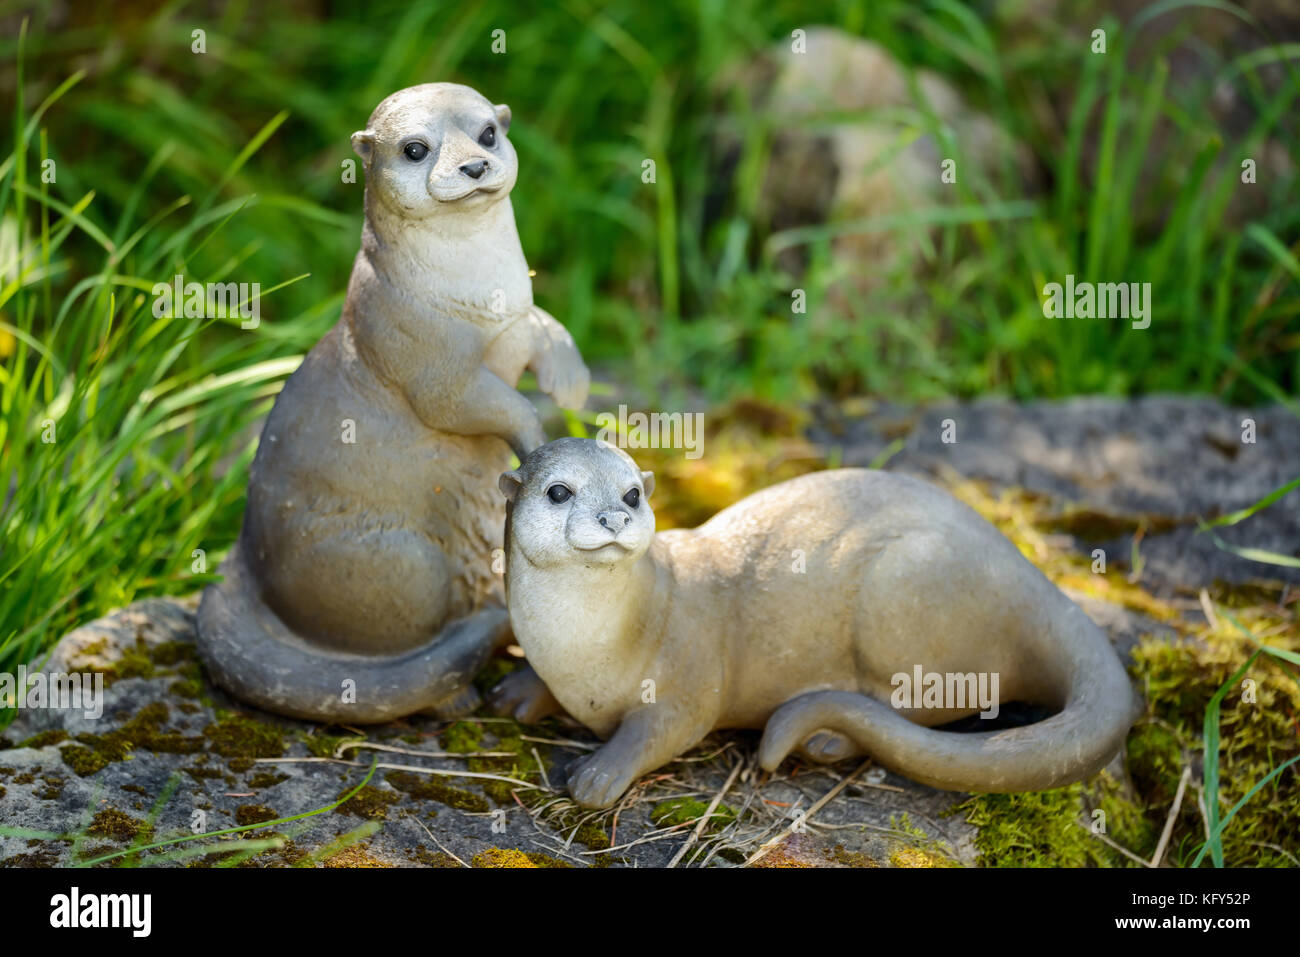 Beau Decorative Mongoose Or Suricate Animal Garden Figurines   Stock Image